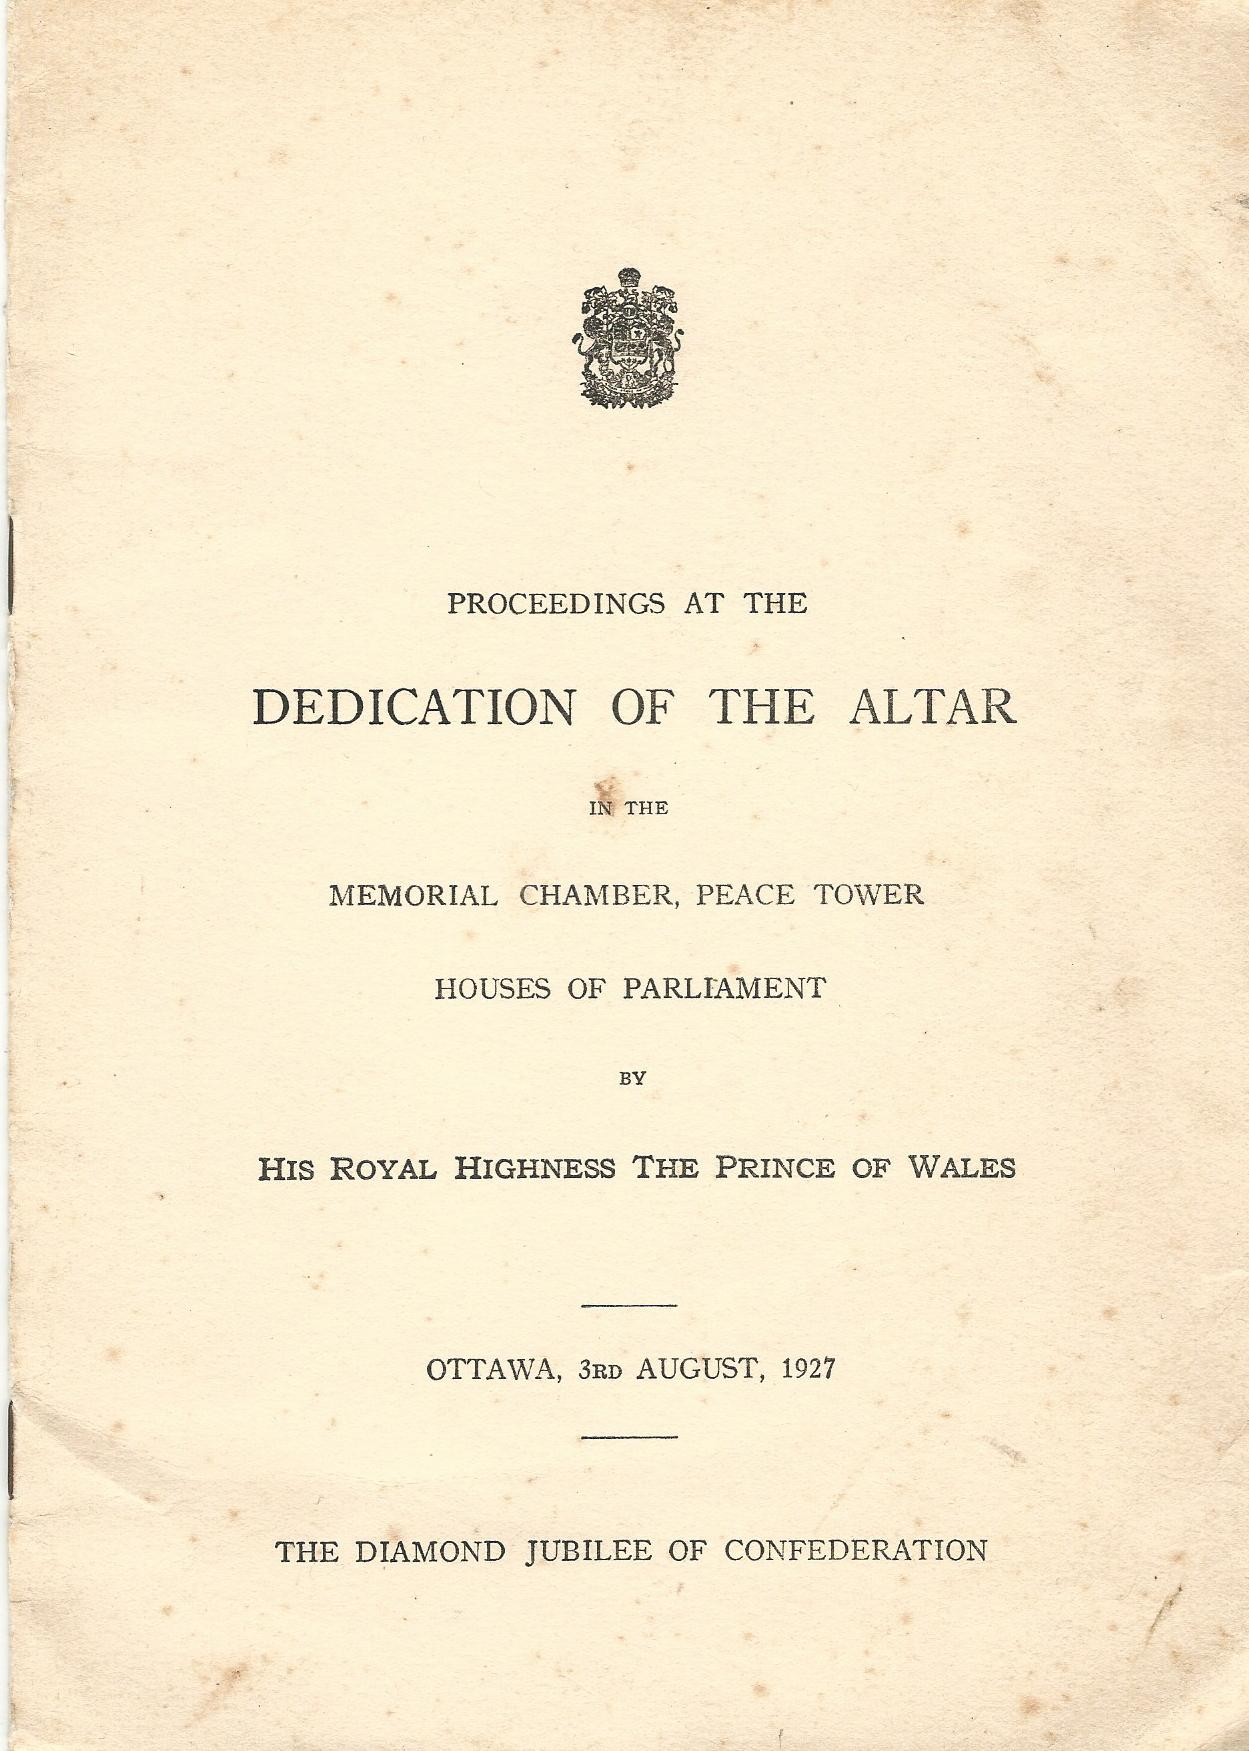 Image for Proceedings at the Dedication of the Altar in the Memorial Chamber, Peace Tower, Houses of Parliament by His Royal Highness the Prince of Wales, Ottawa, 3rd August 1927, The Diamond Jubilee of Confederation.